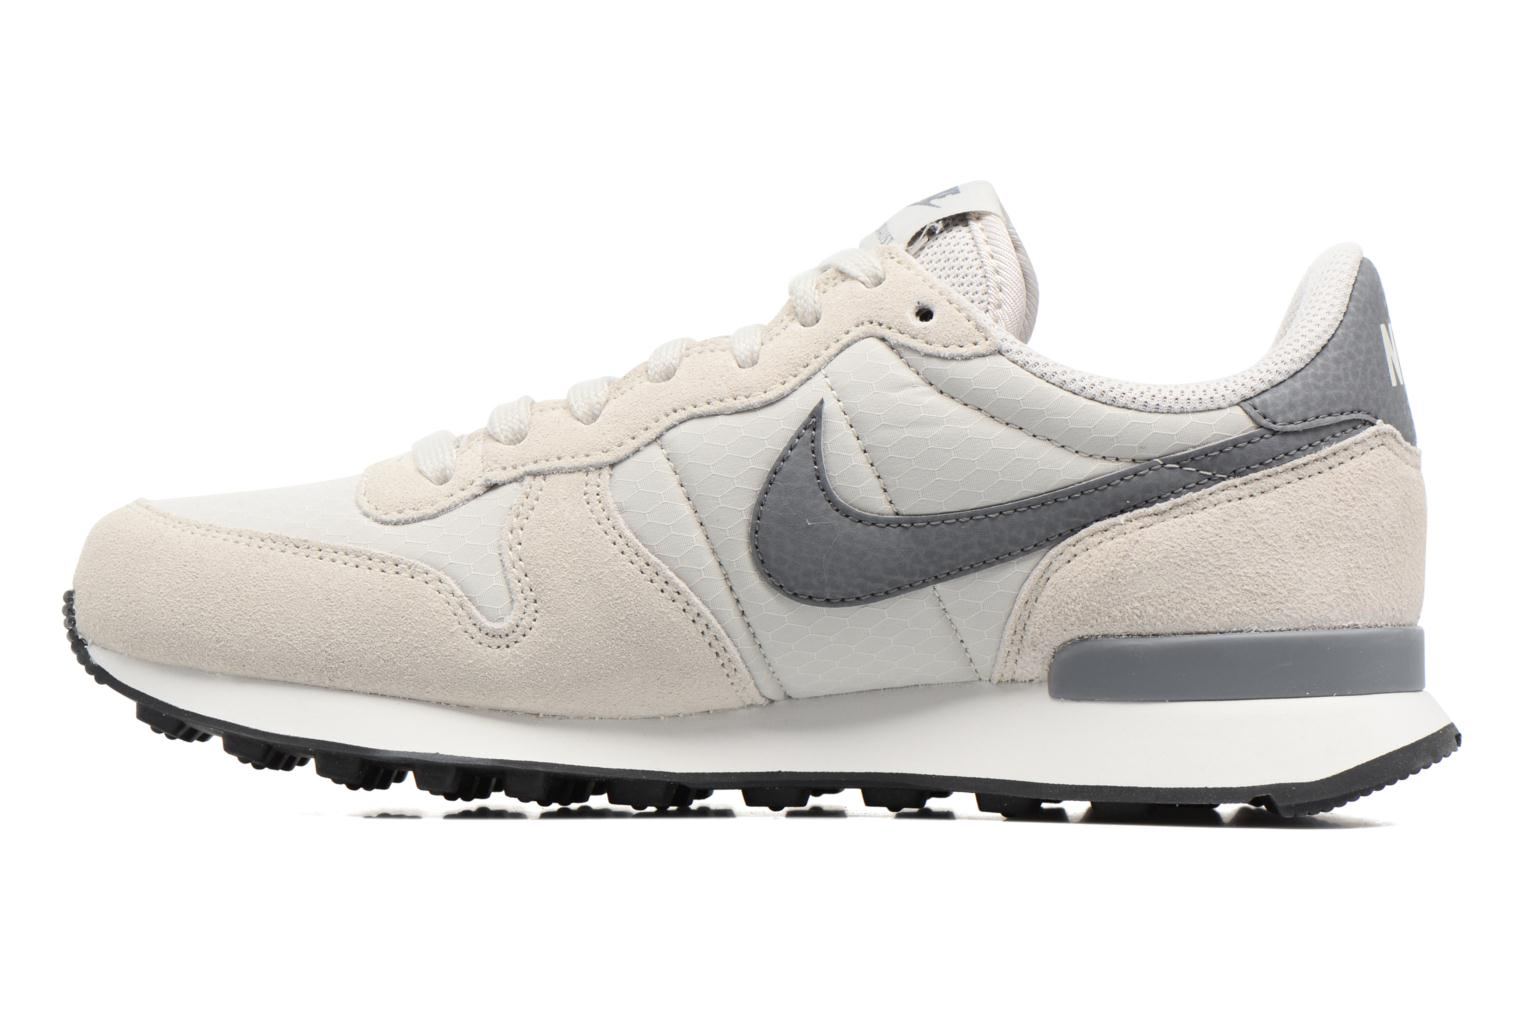 Wmns Internationalist Light Bone/Cool Grey-Summit White-Black